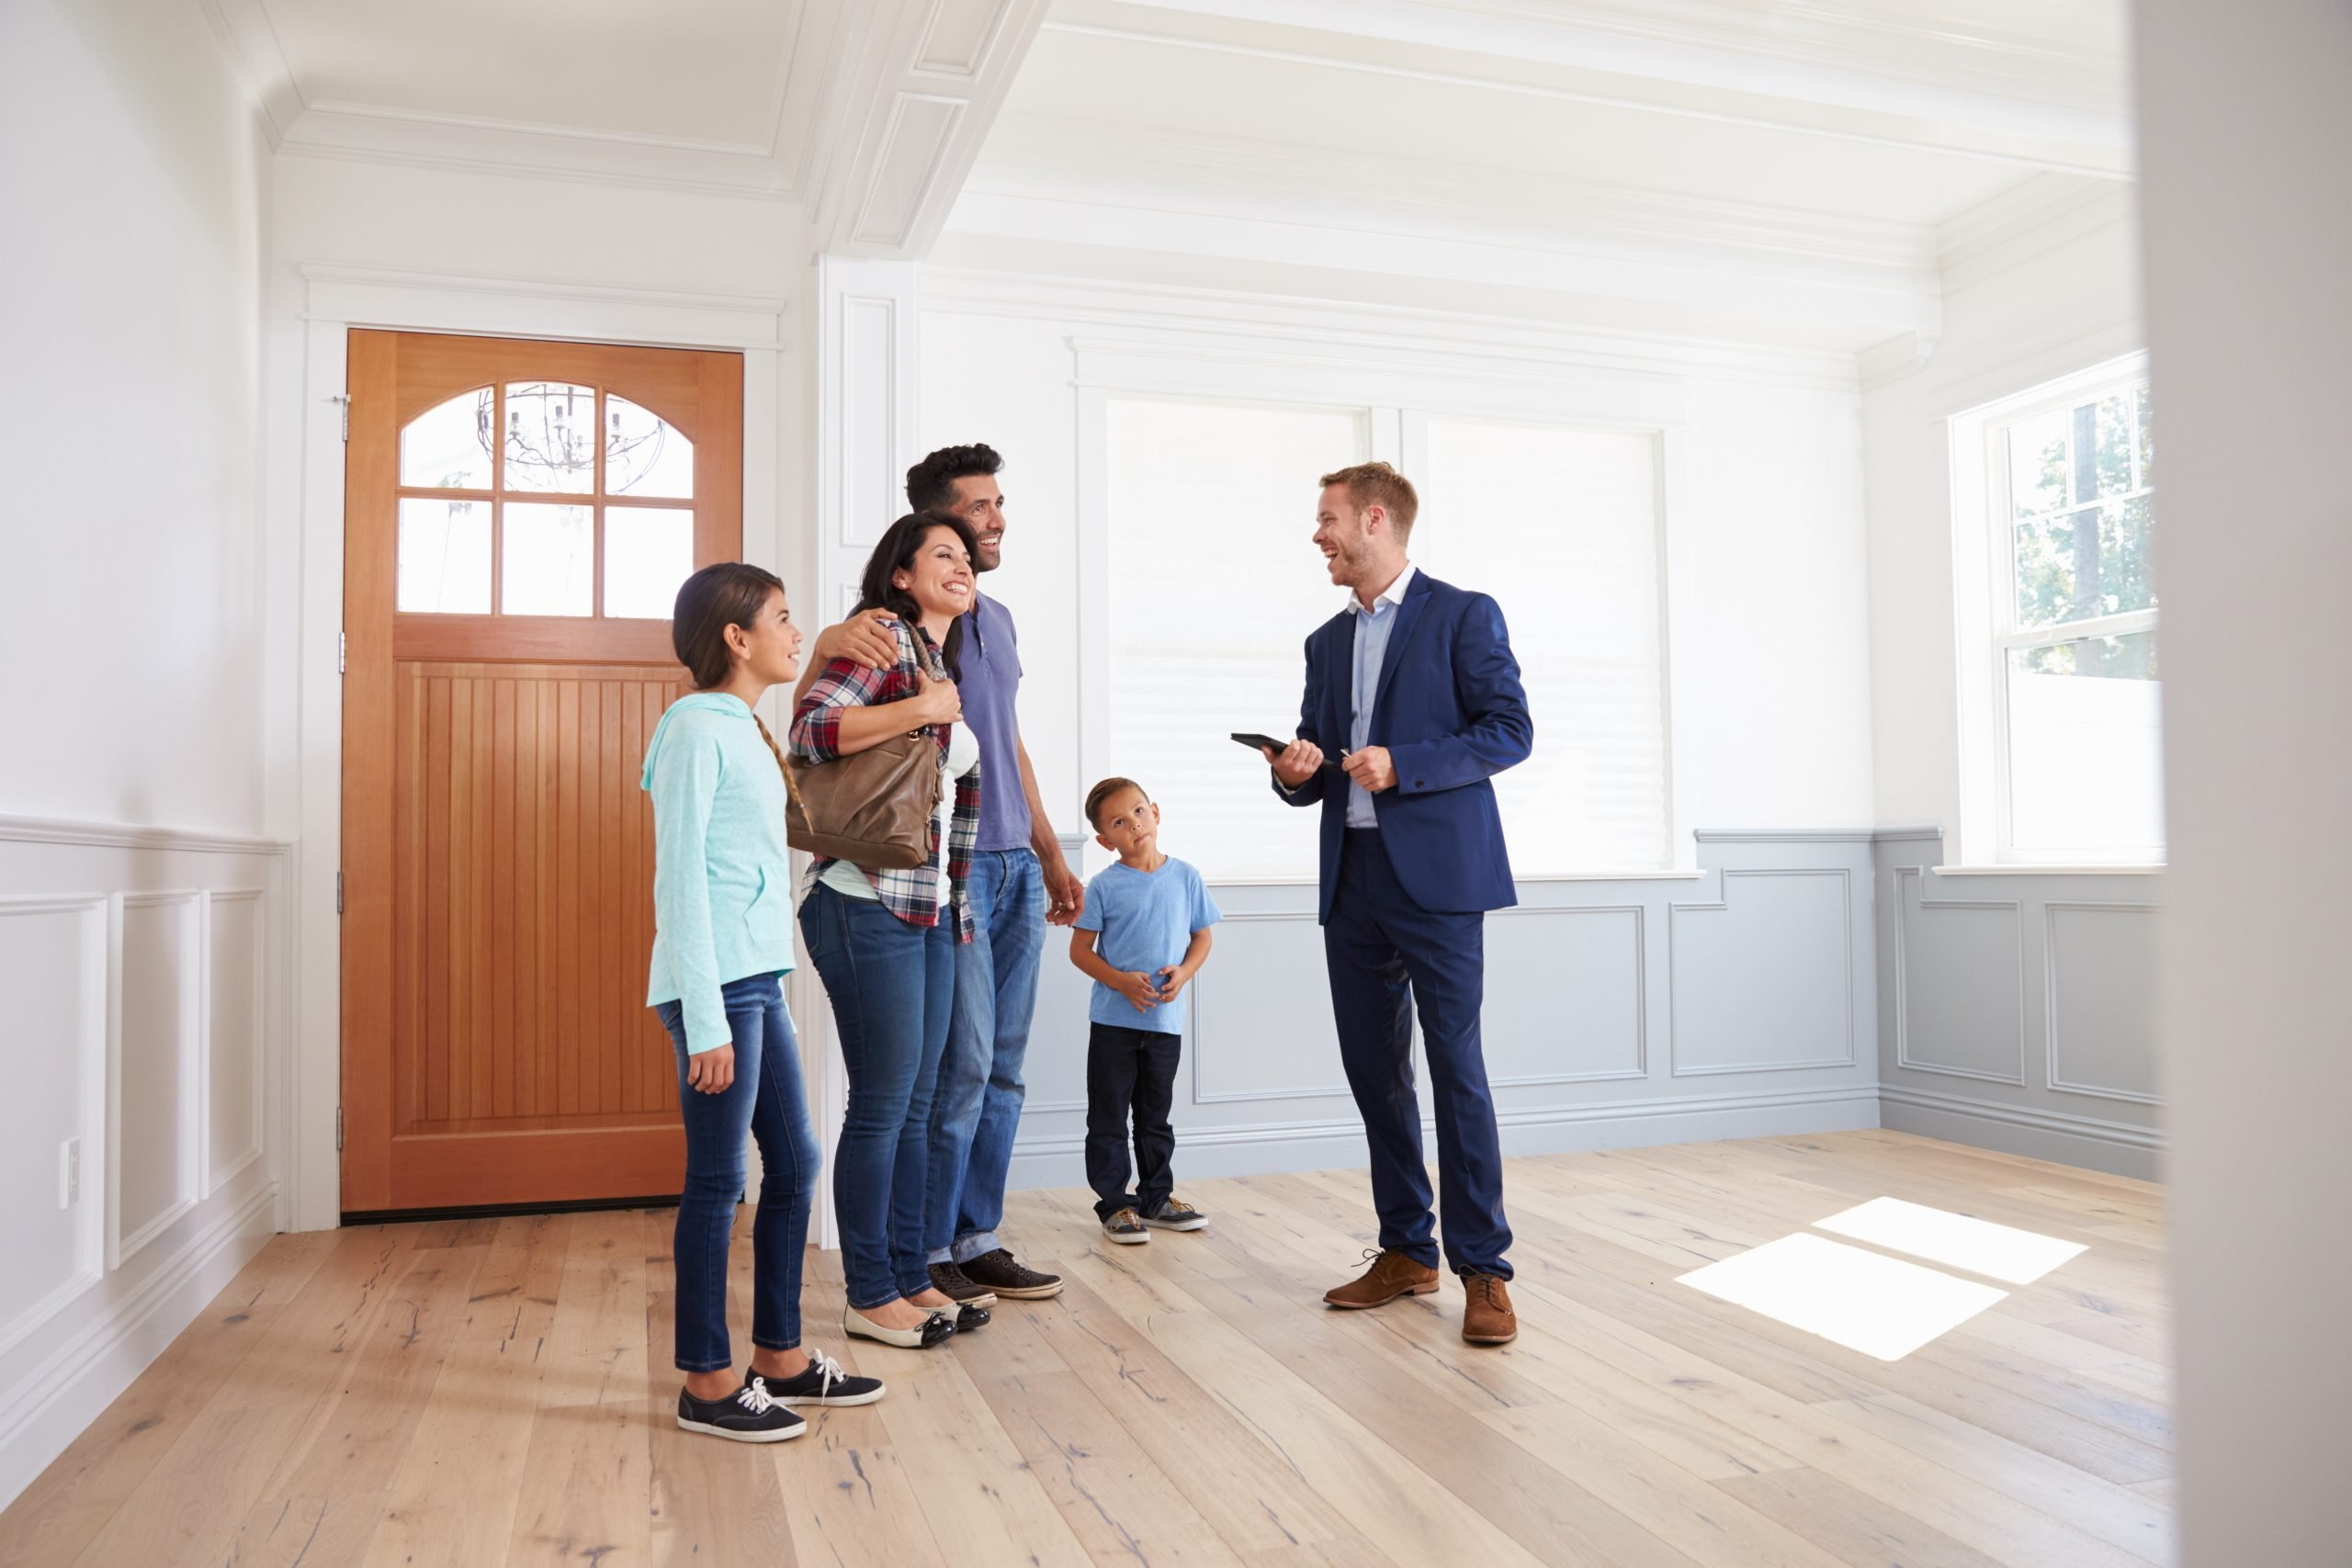 agent advising family about insurance quote before buying house